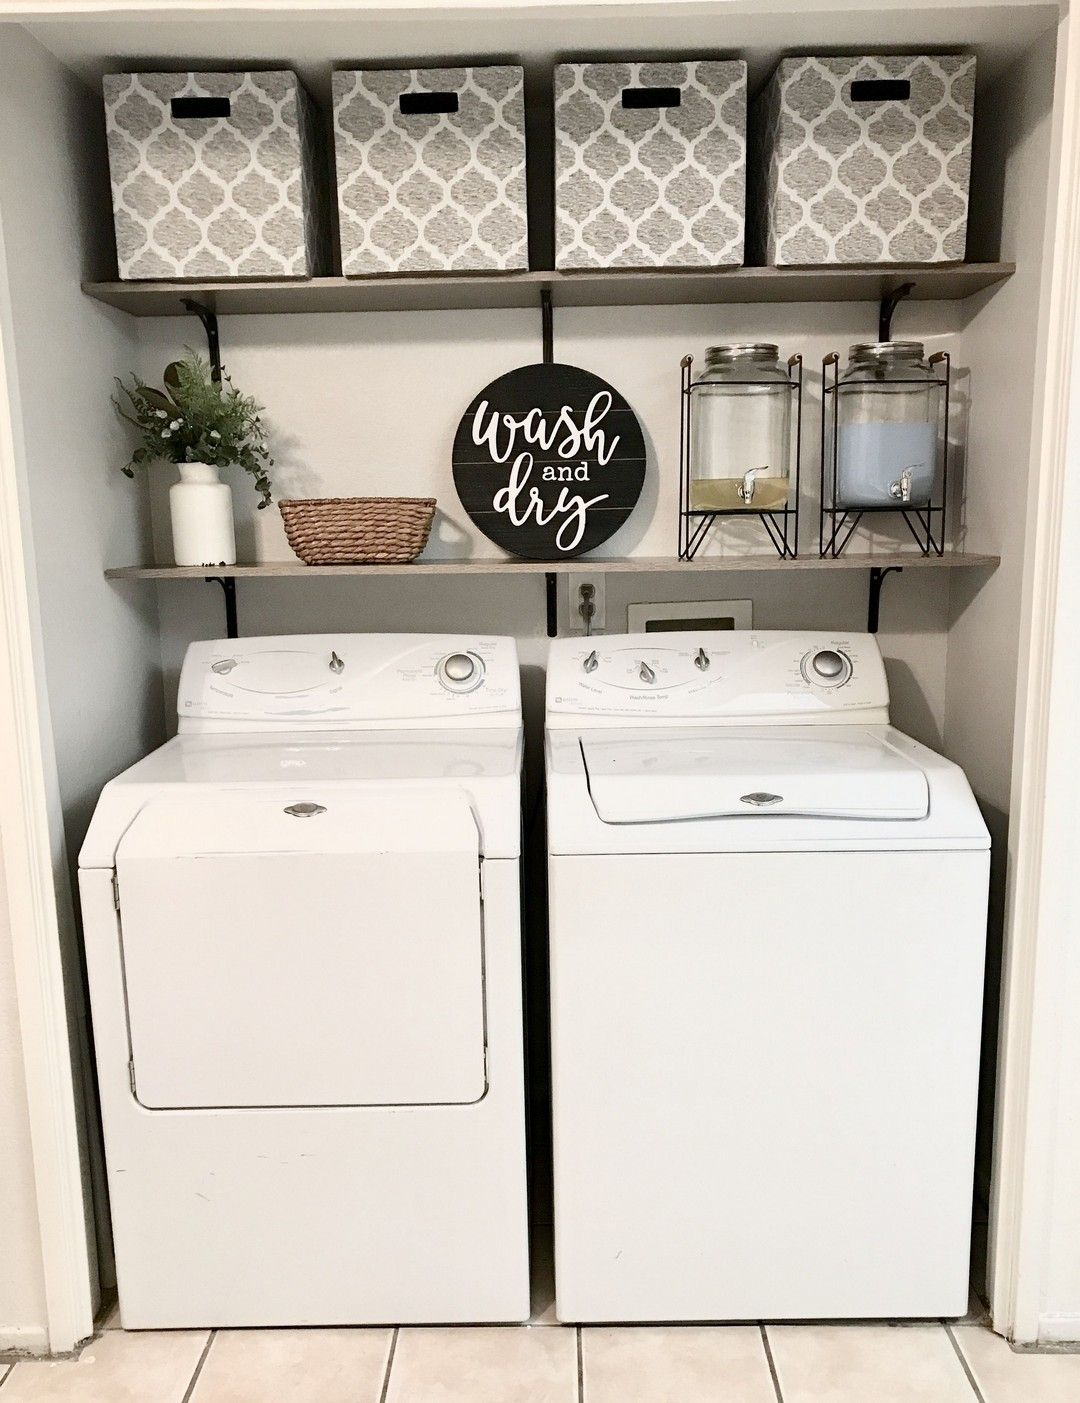 27 Laundry Room Decorating Ideas To Help Organize Space Laundy